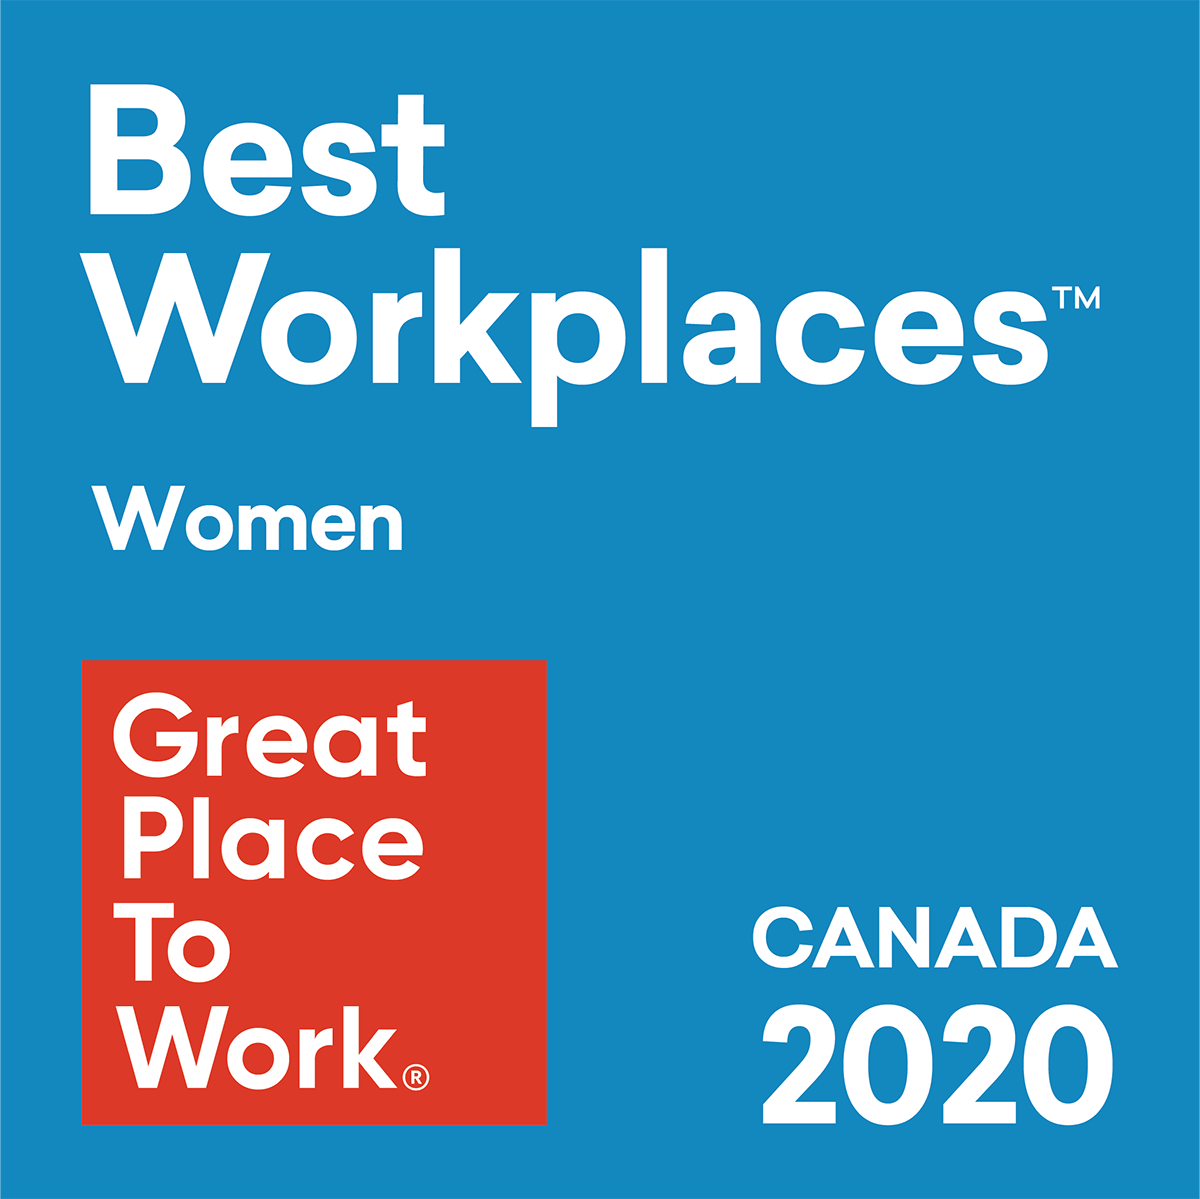 Great Place To Work 2020: Women